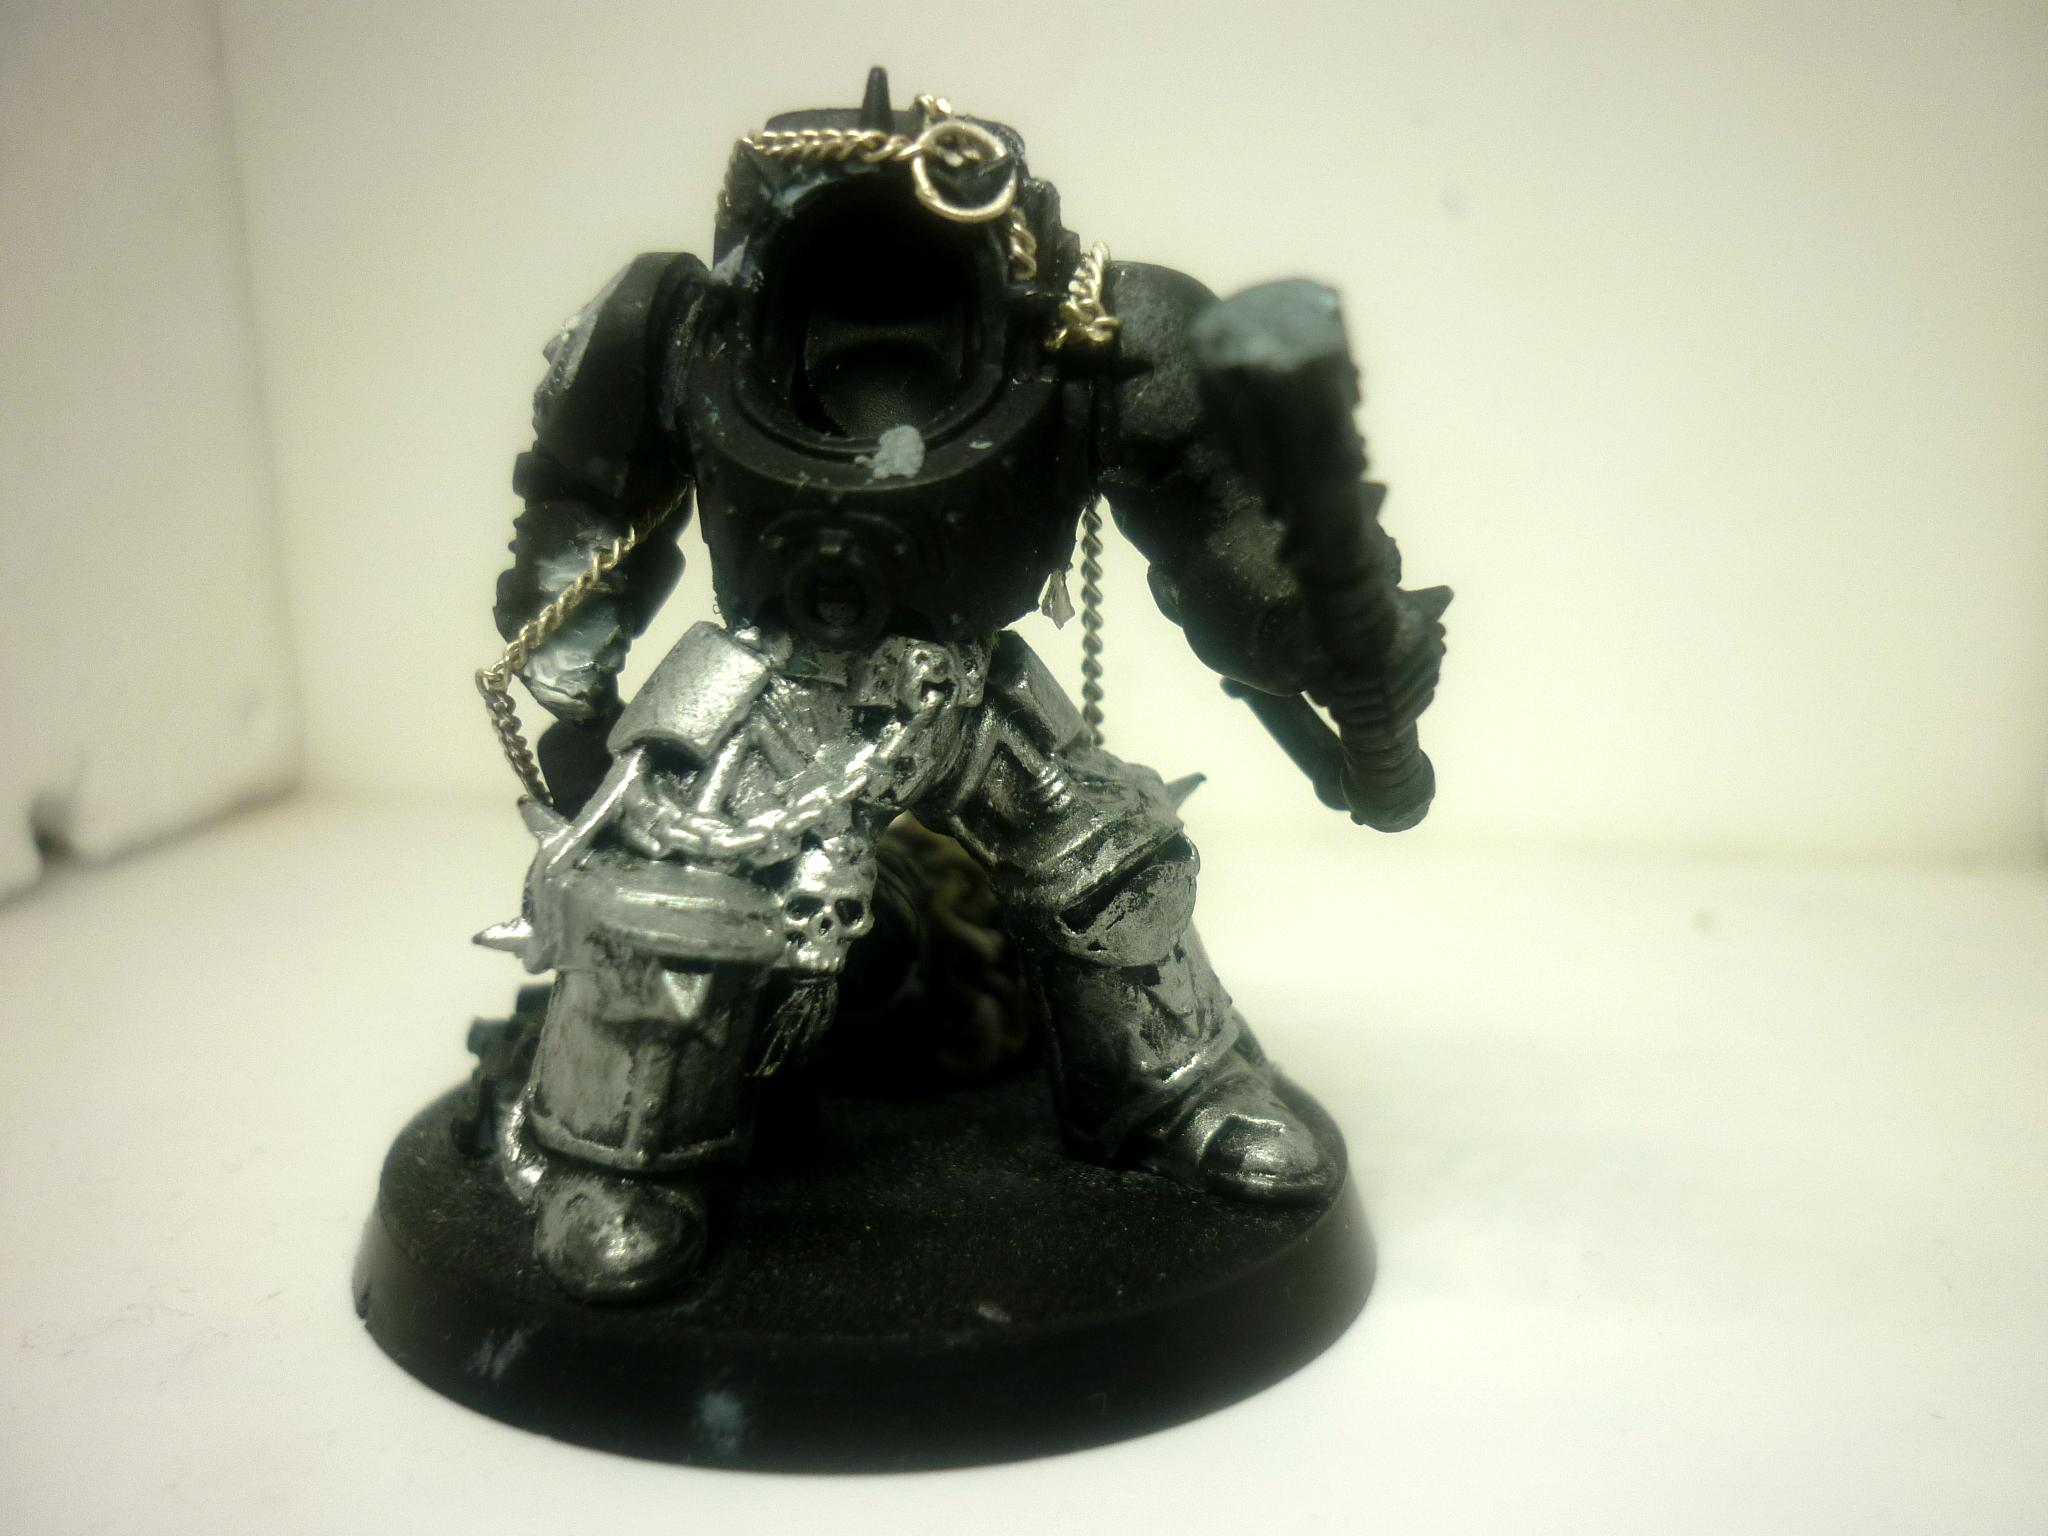 Chained Terminator